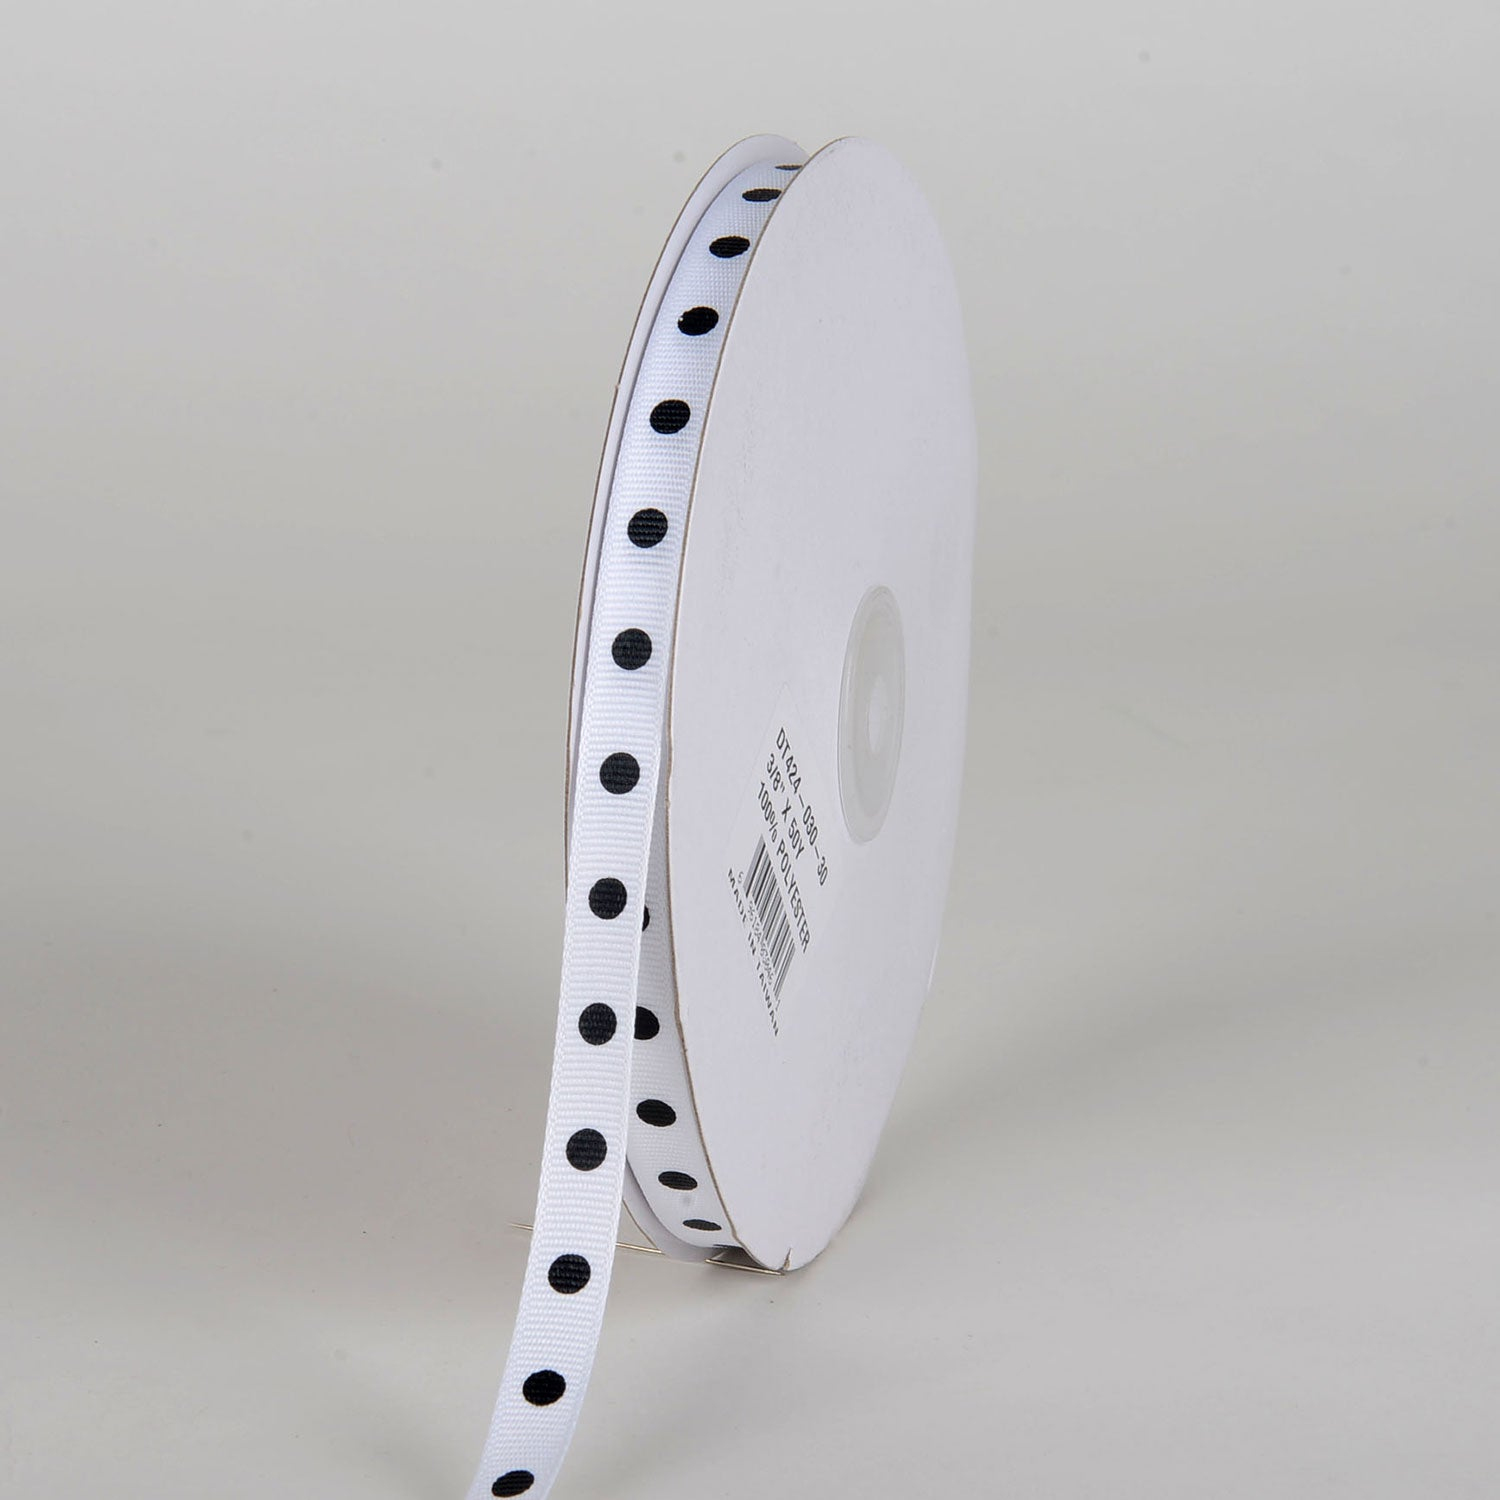 Grosgrain Ribbon Polka Dot White with Black Dots ( W: 3/8 inch | L: 50 Yards )